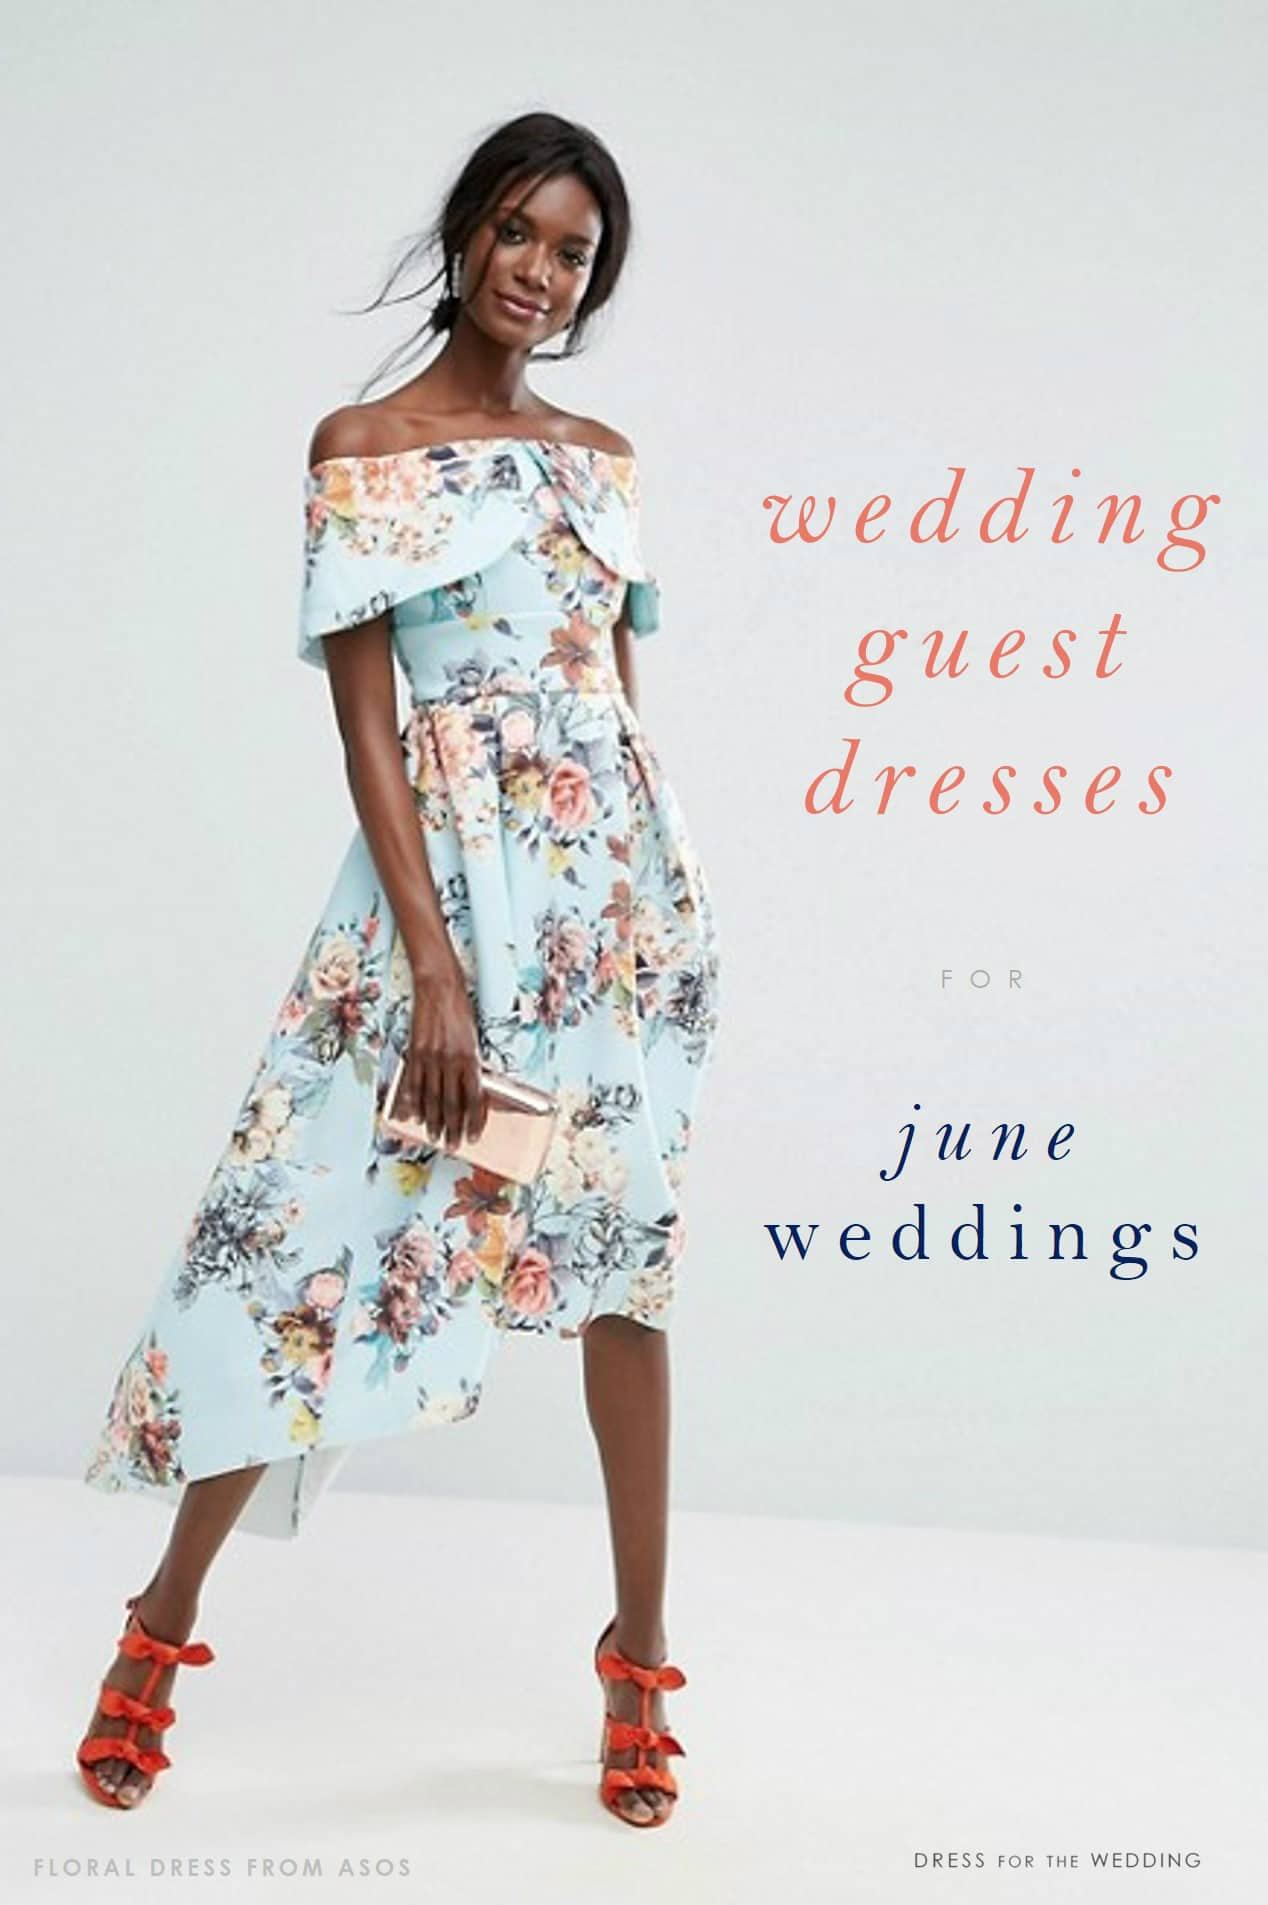 20 On Trend Dresses For June Wedding Guests Dress For The Wedding